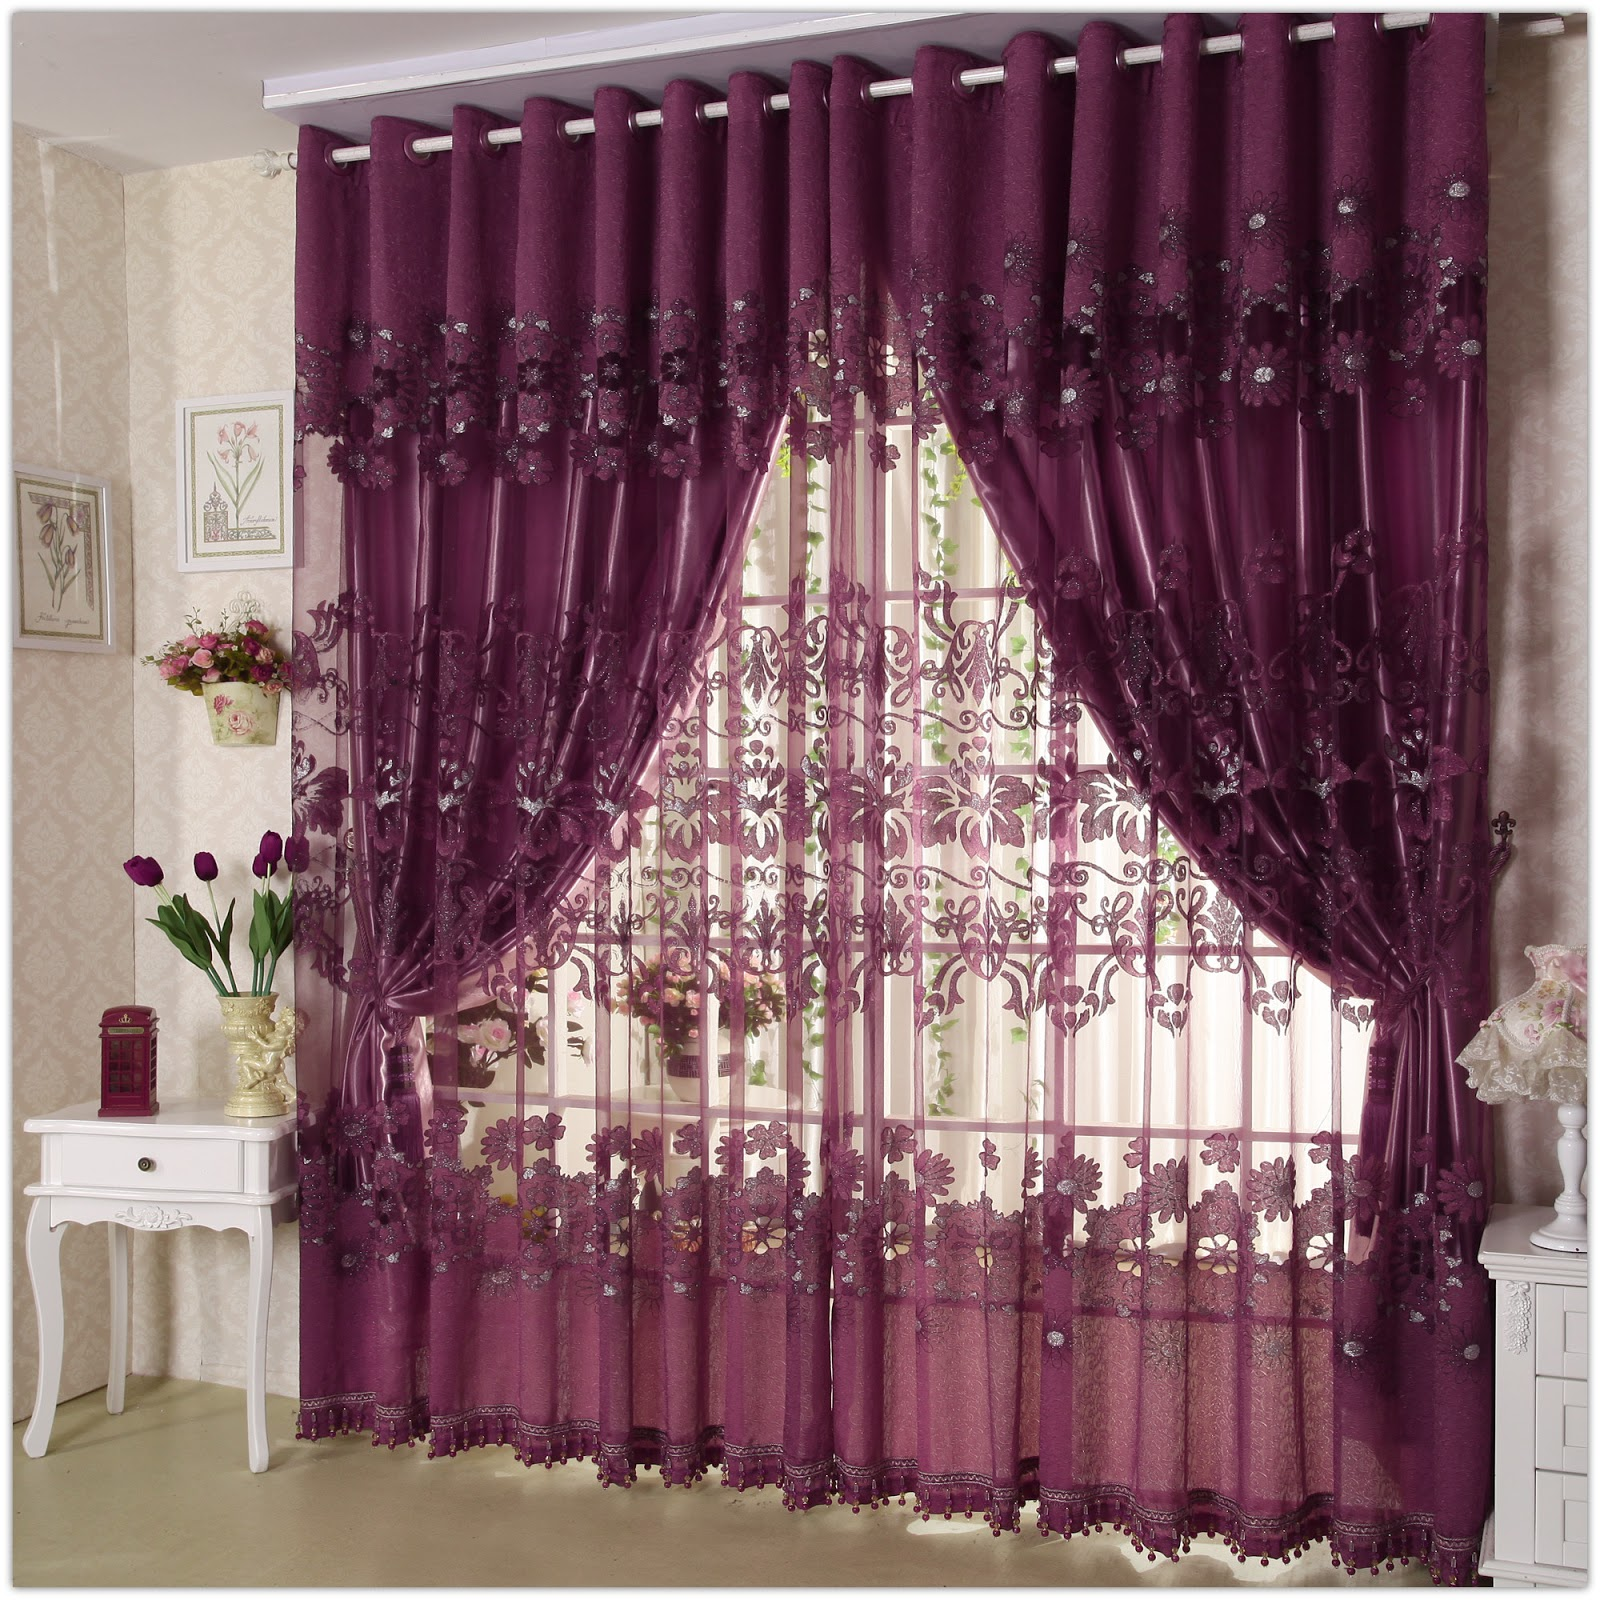 Plastic Cafe Curtains Cooler Curtain Door Strips Eyelets